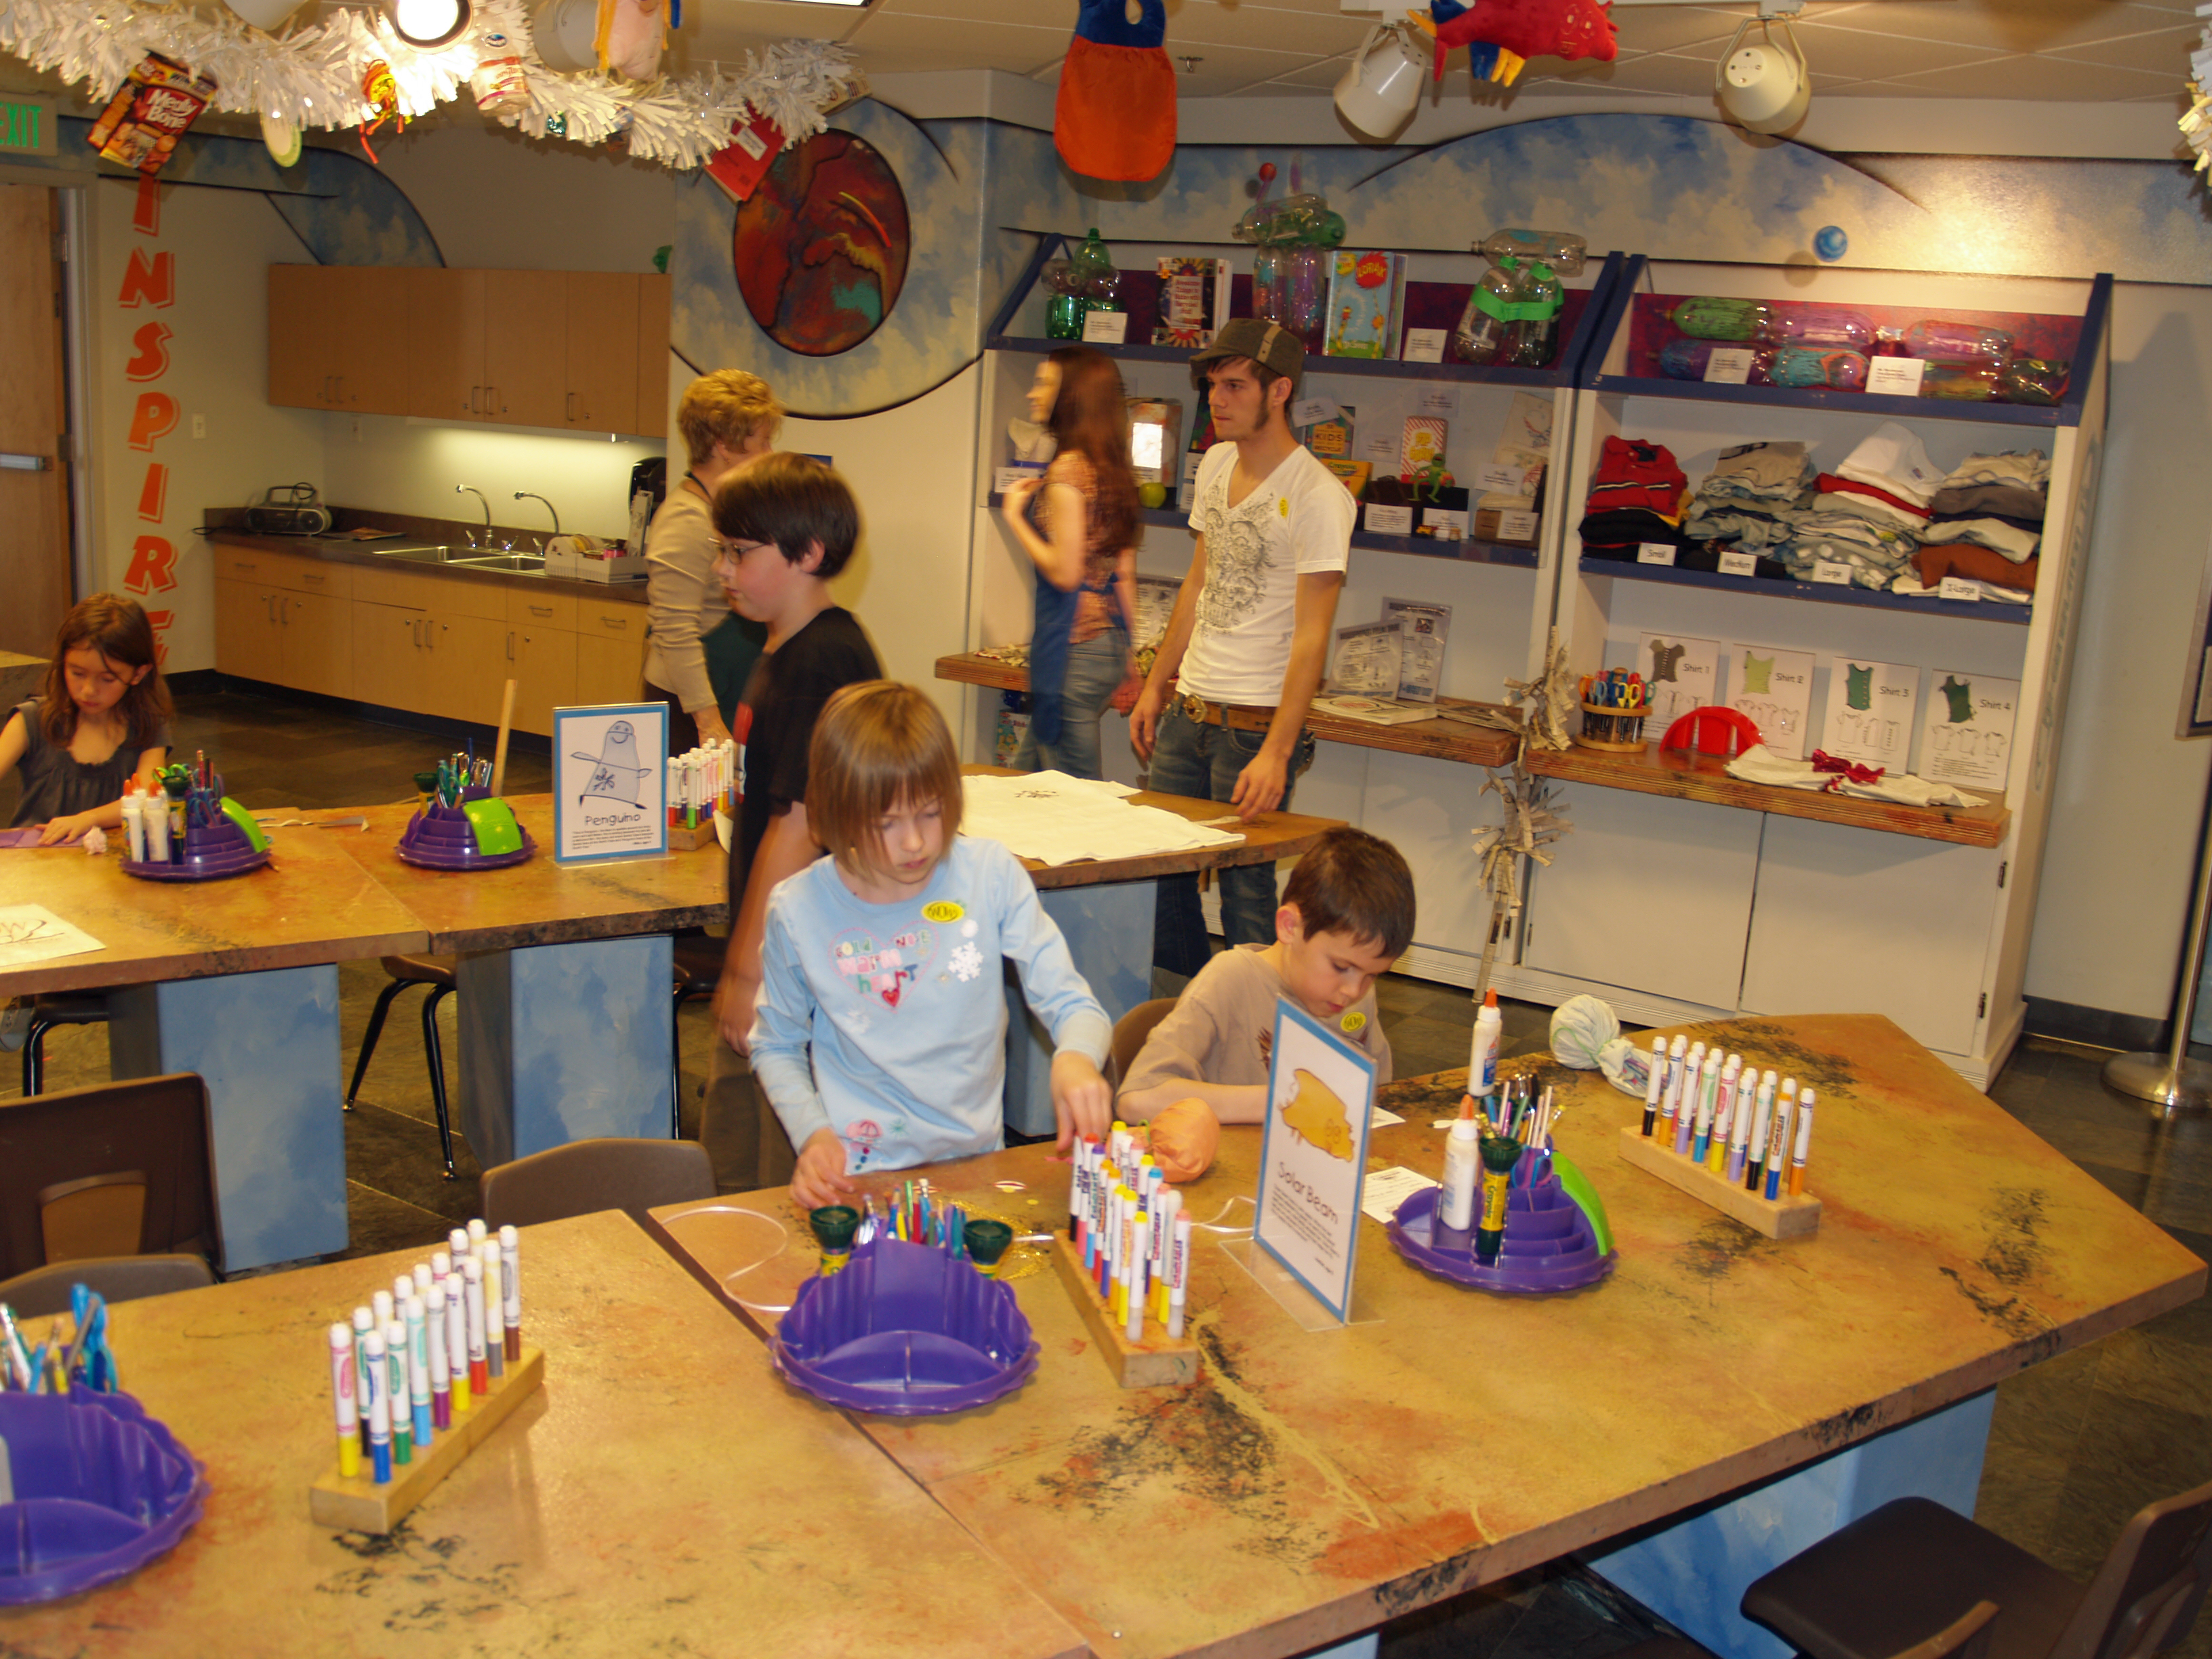 File:Buell Childrens Museum Art Room by David Shankbone.jpg - Wikimedia Commons